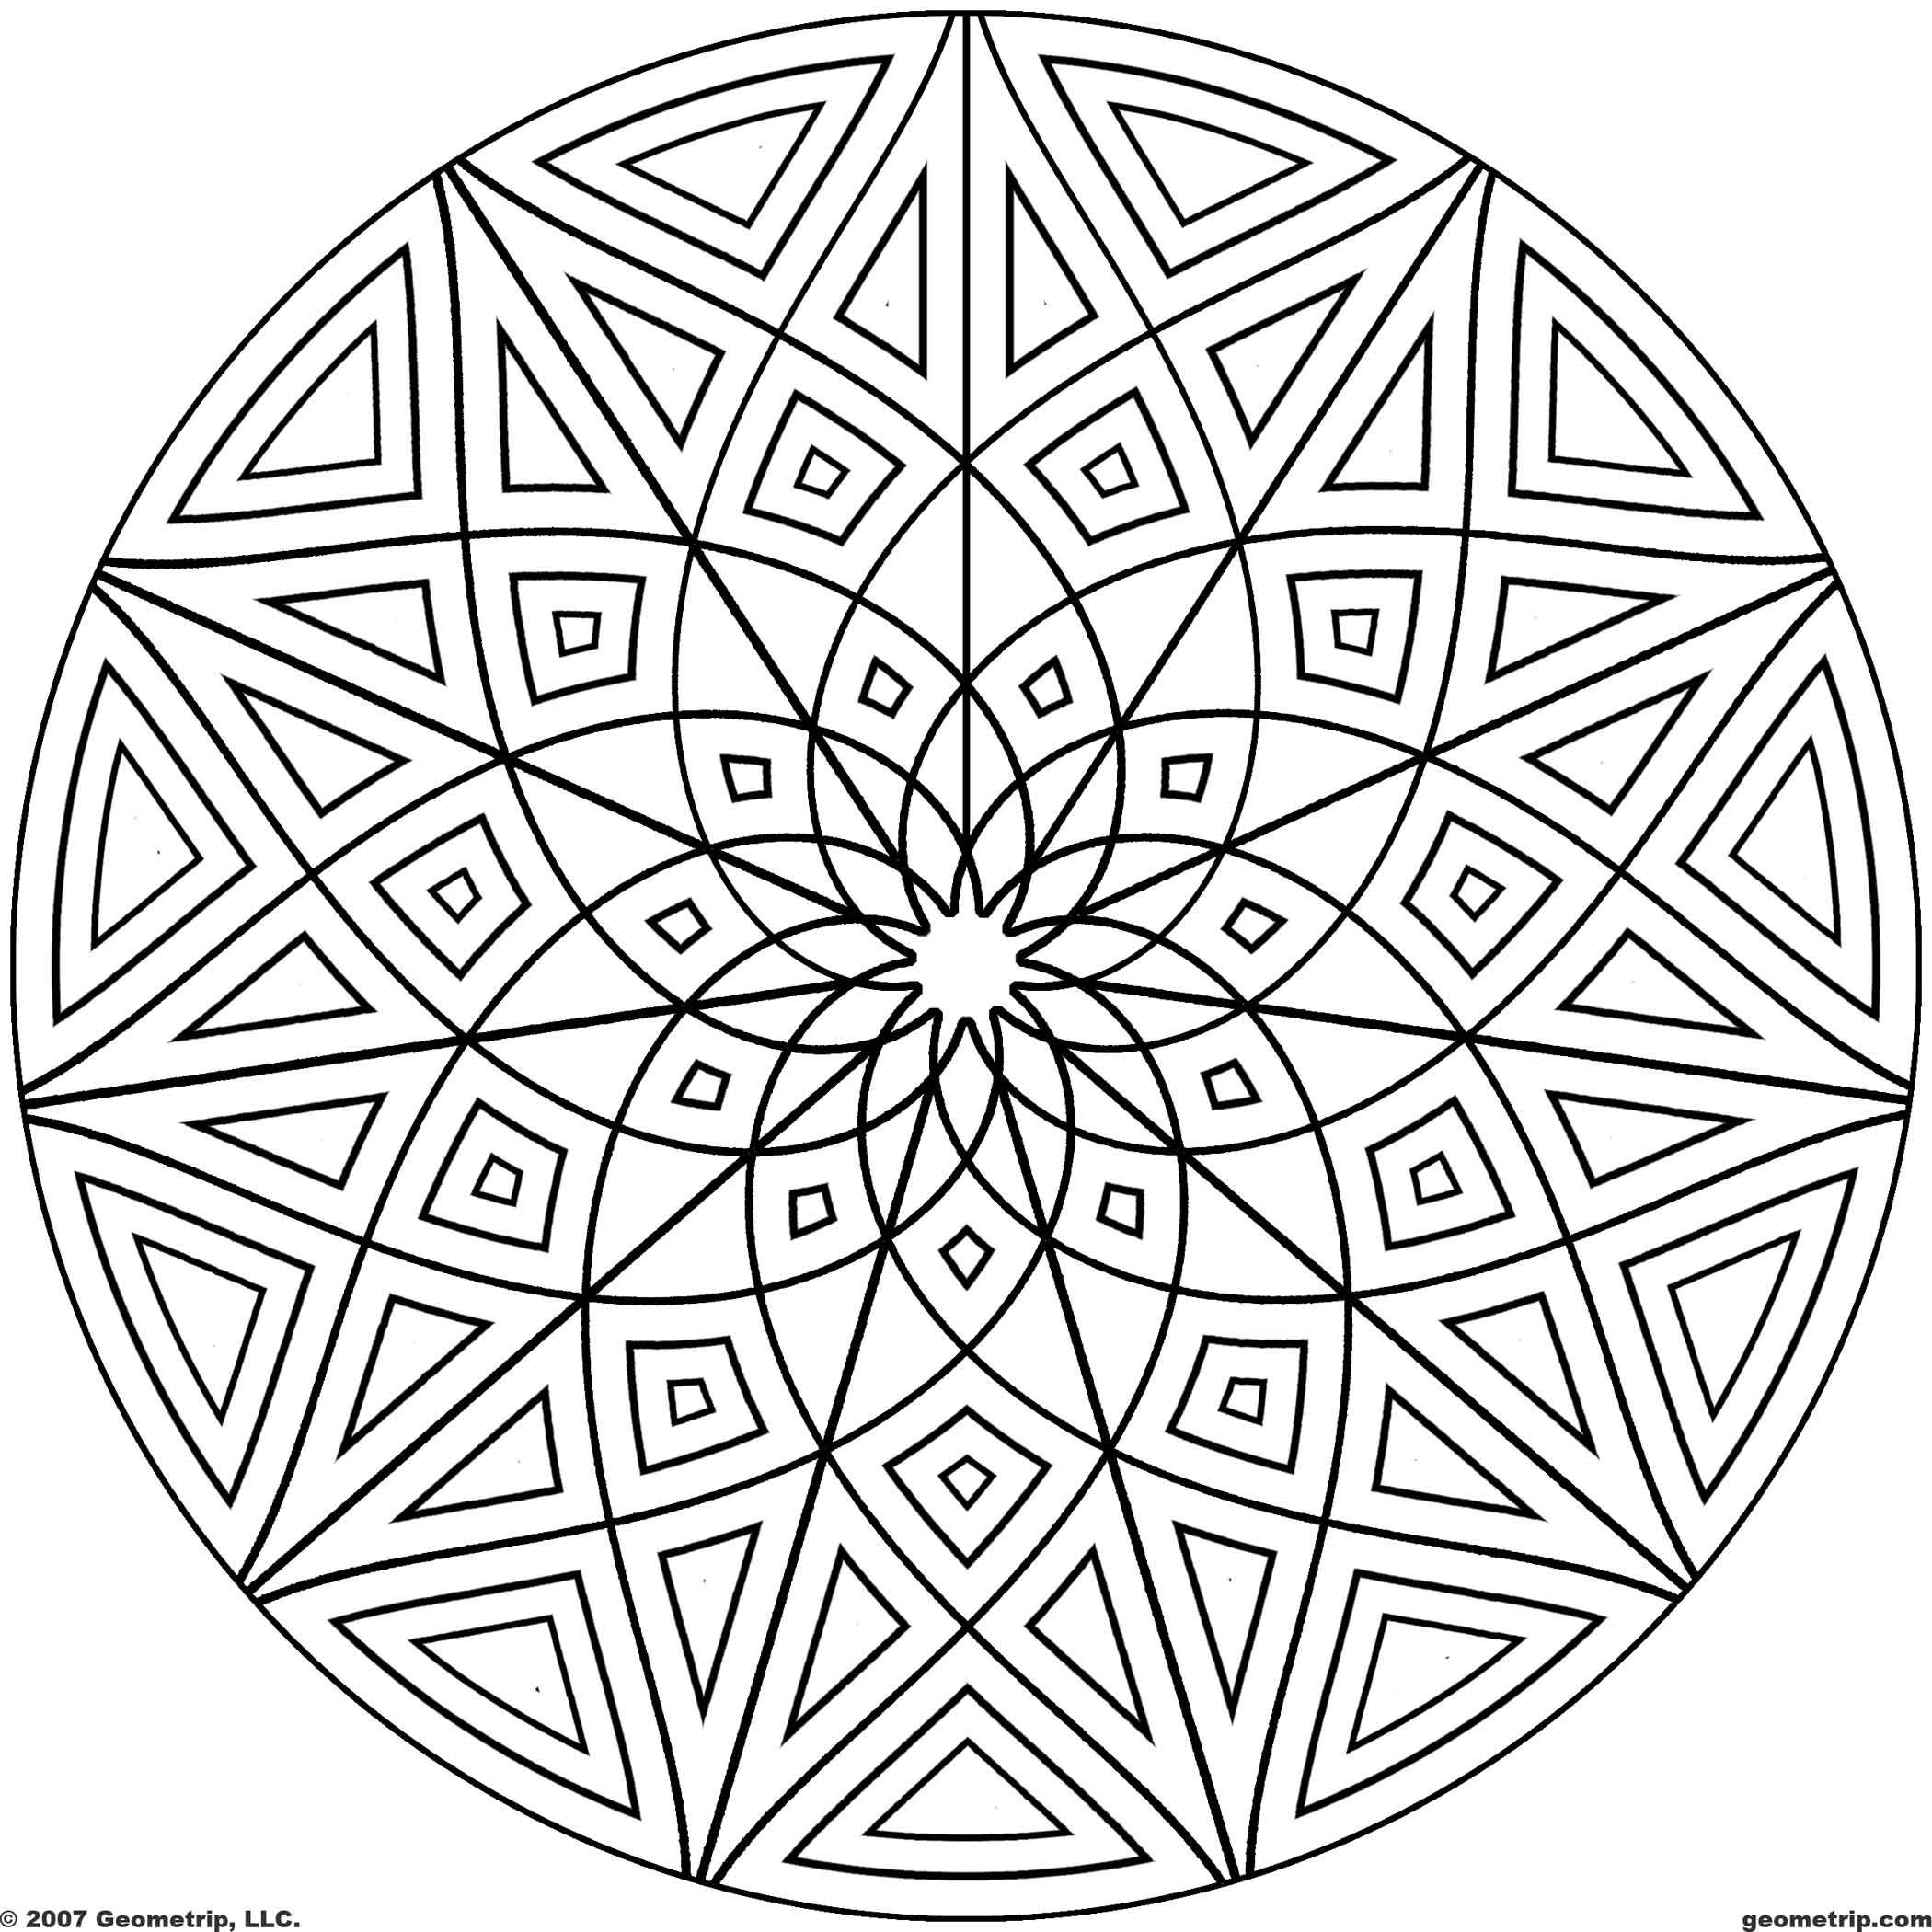 Kaleidoscope Coloring Pages | Geometrip.com - Free Geometric ...